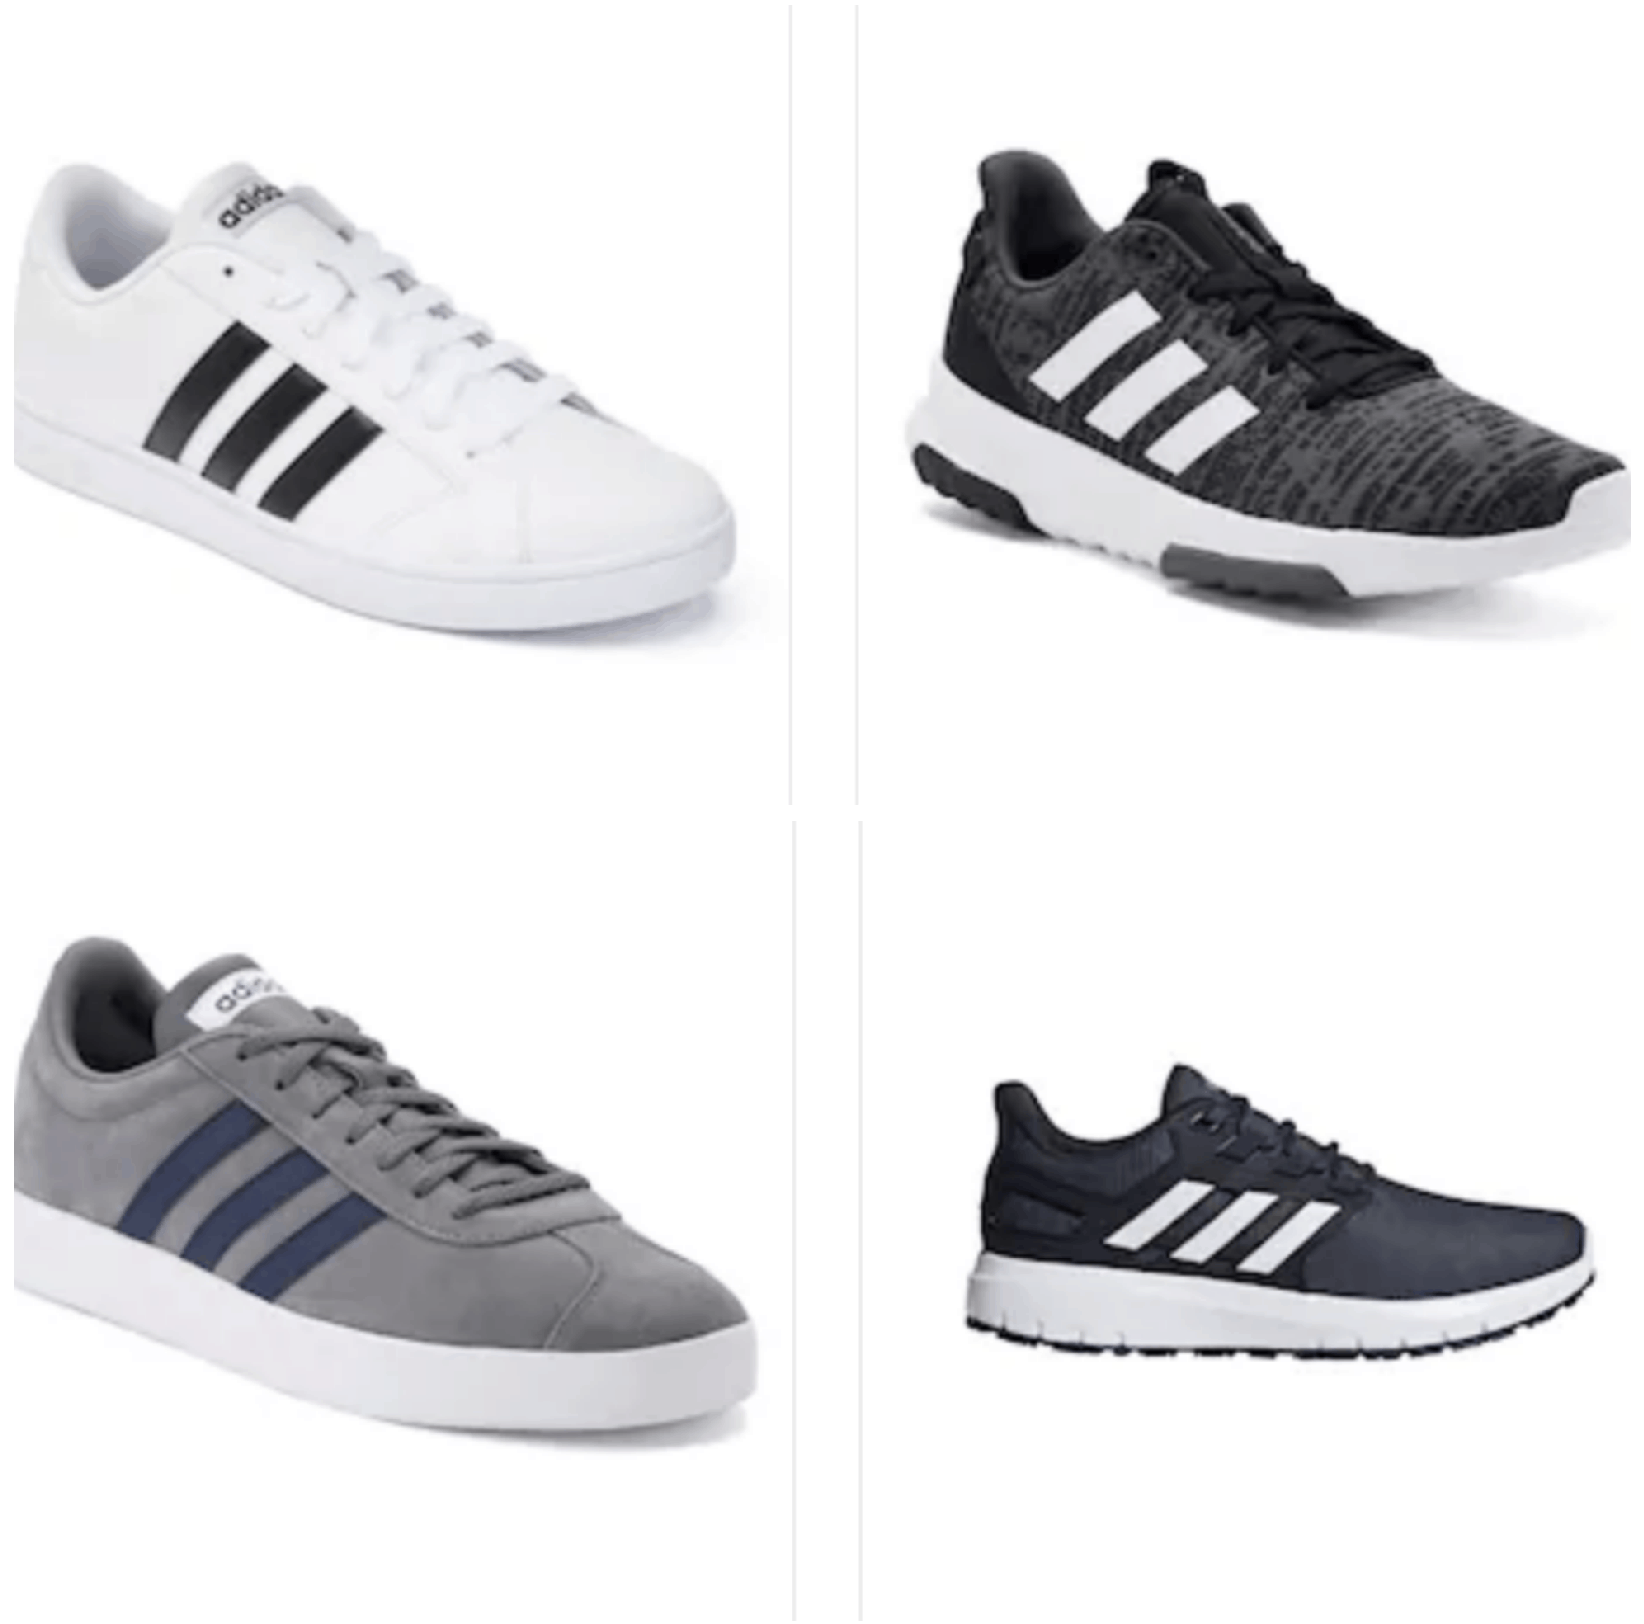 2a51be05c542  HOT  Back to School Savings On Adidas Shoes